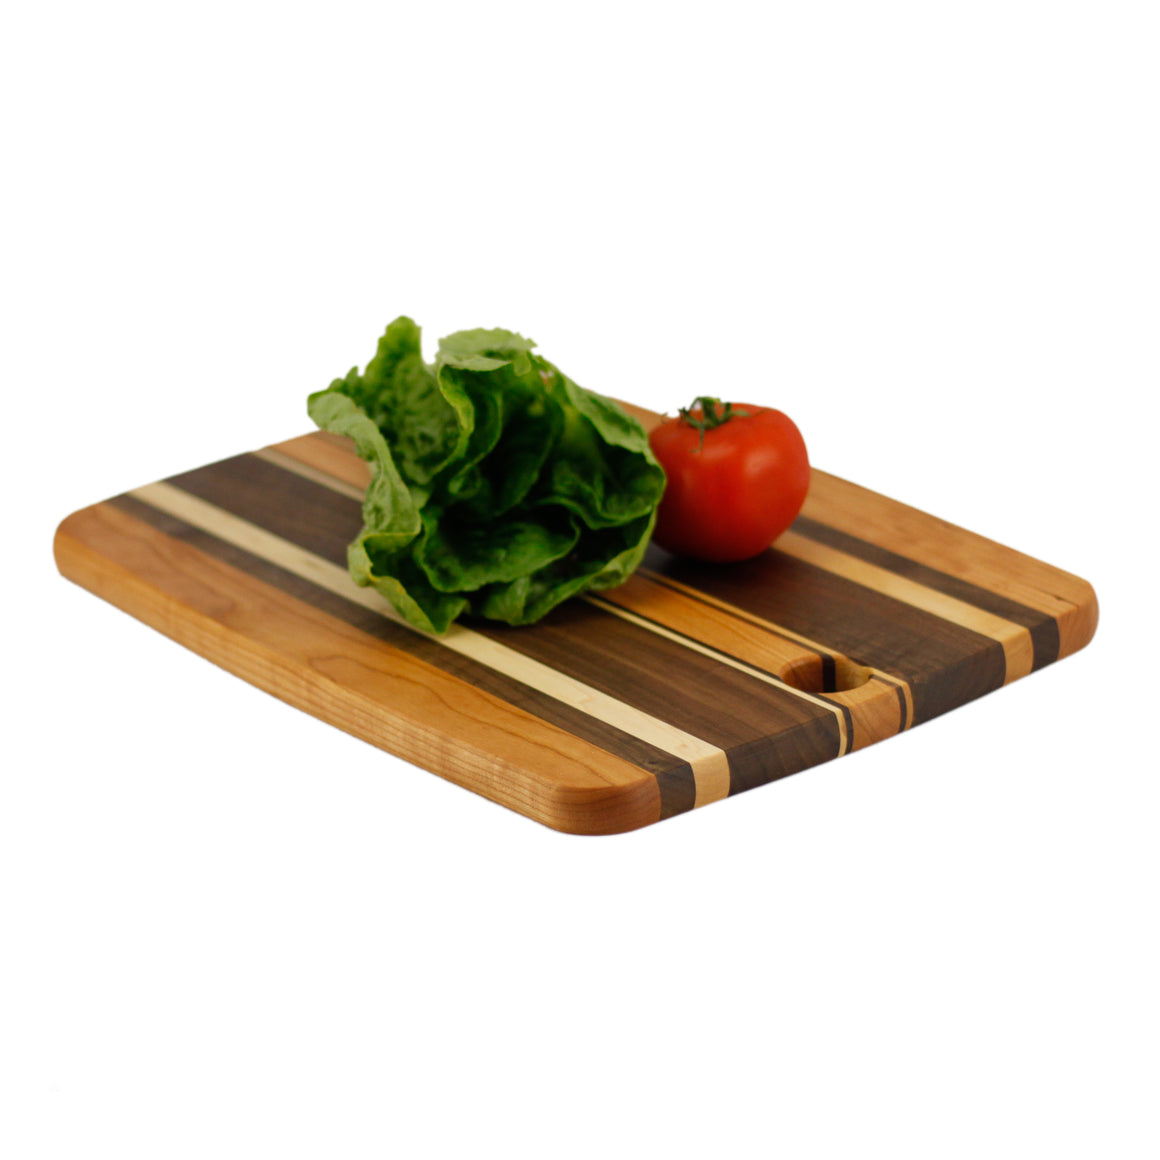 Mixed Hardwoods - Cutting Board